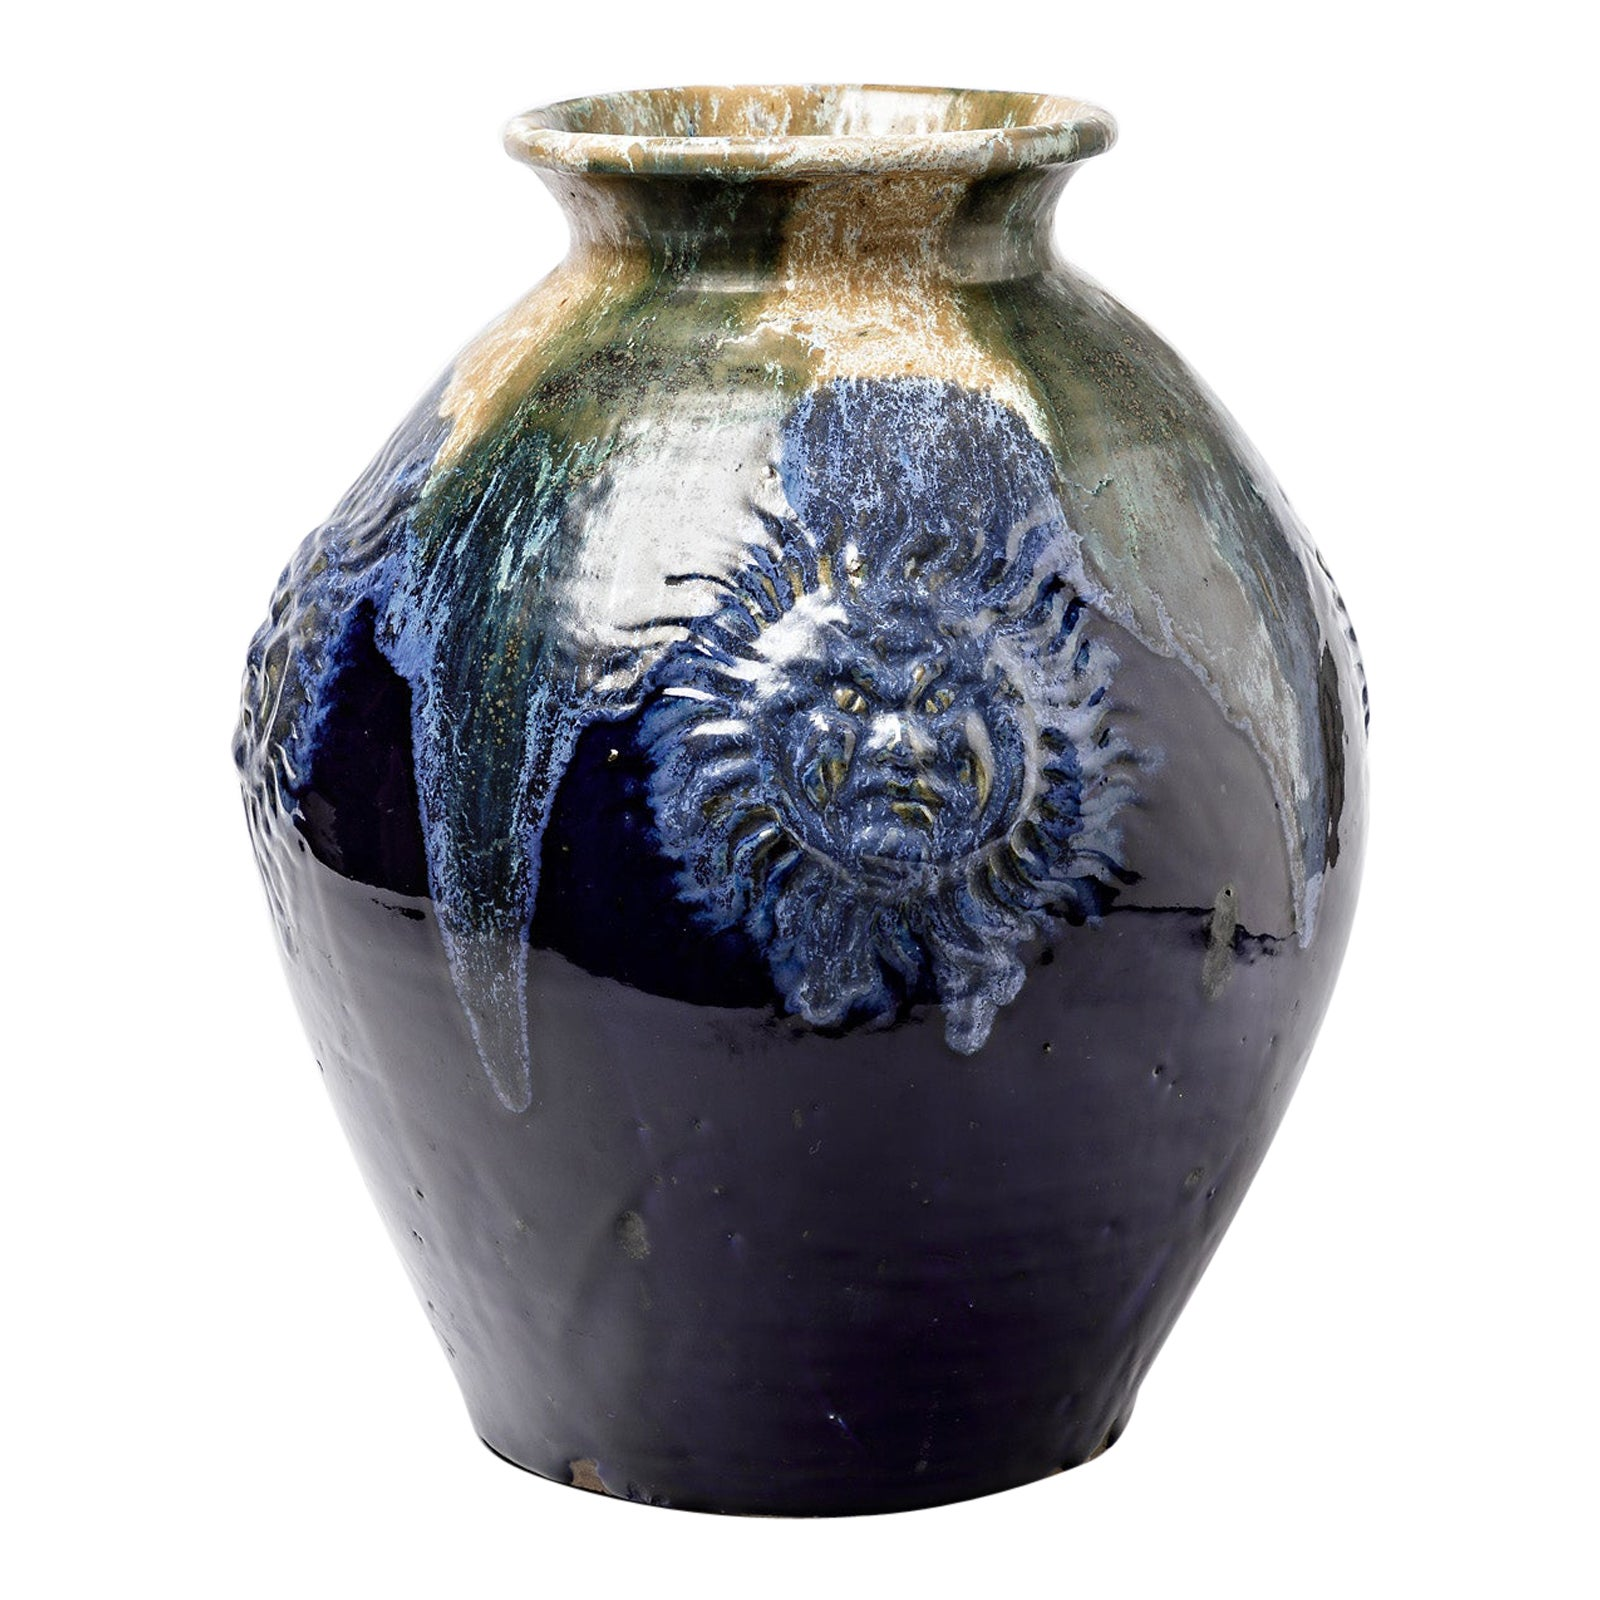 Big Ceramic Vase with Blue Glazes Decoration by Lucien Arnaud, circa 1920